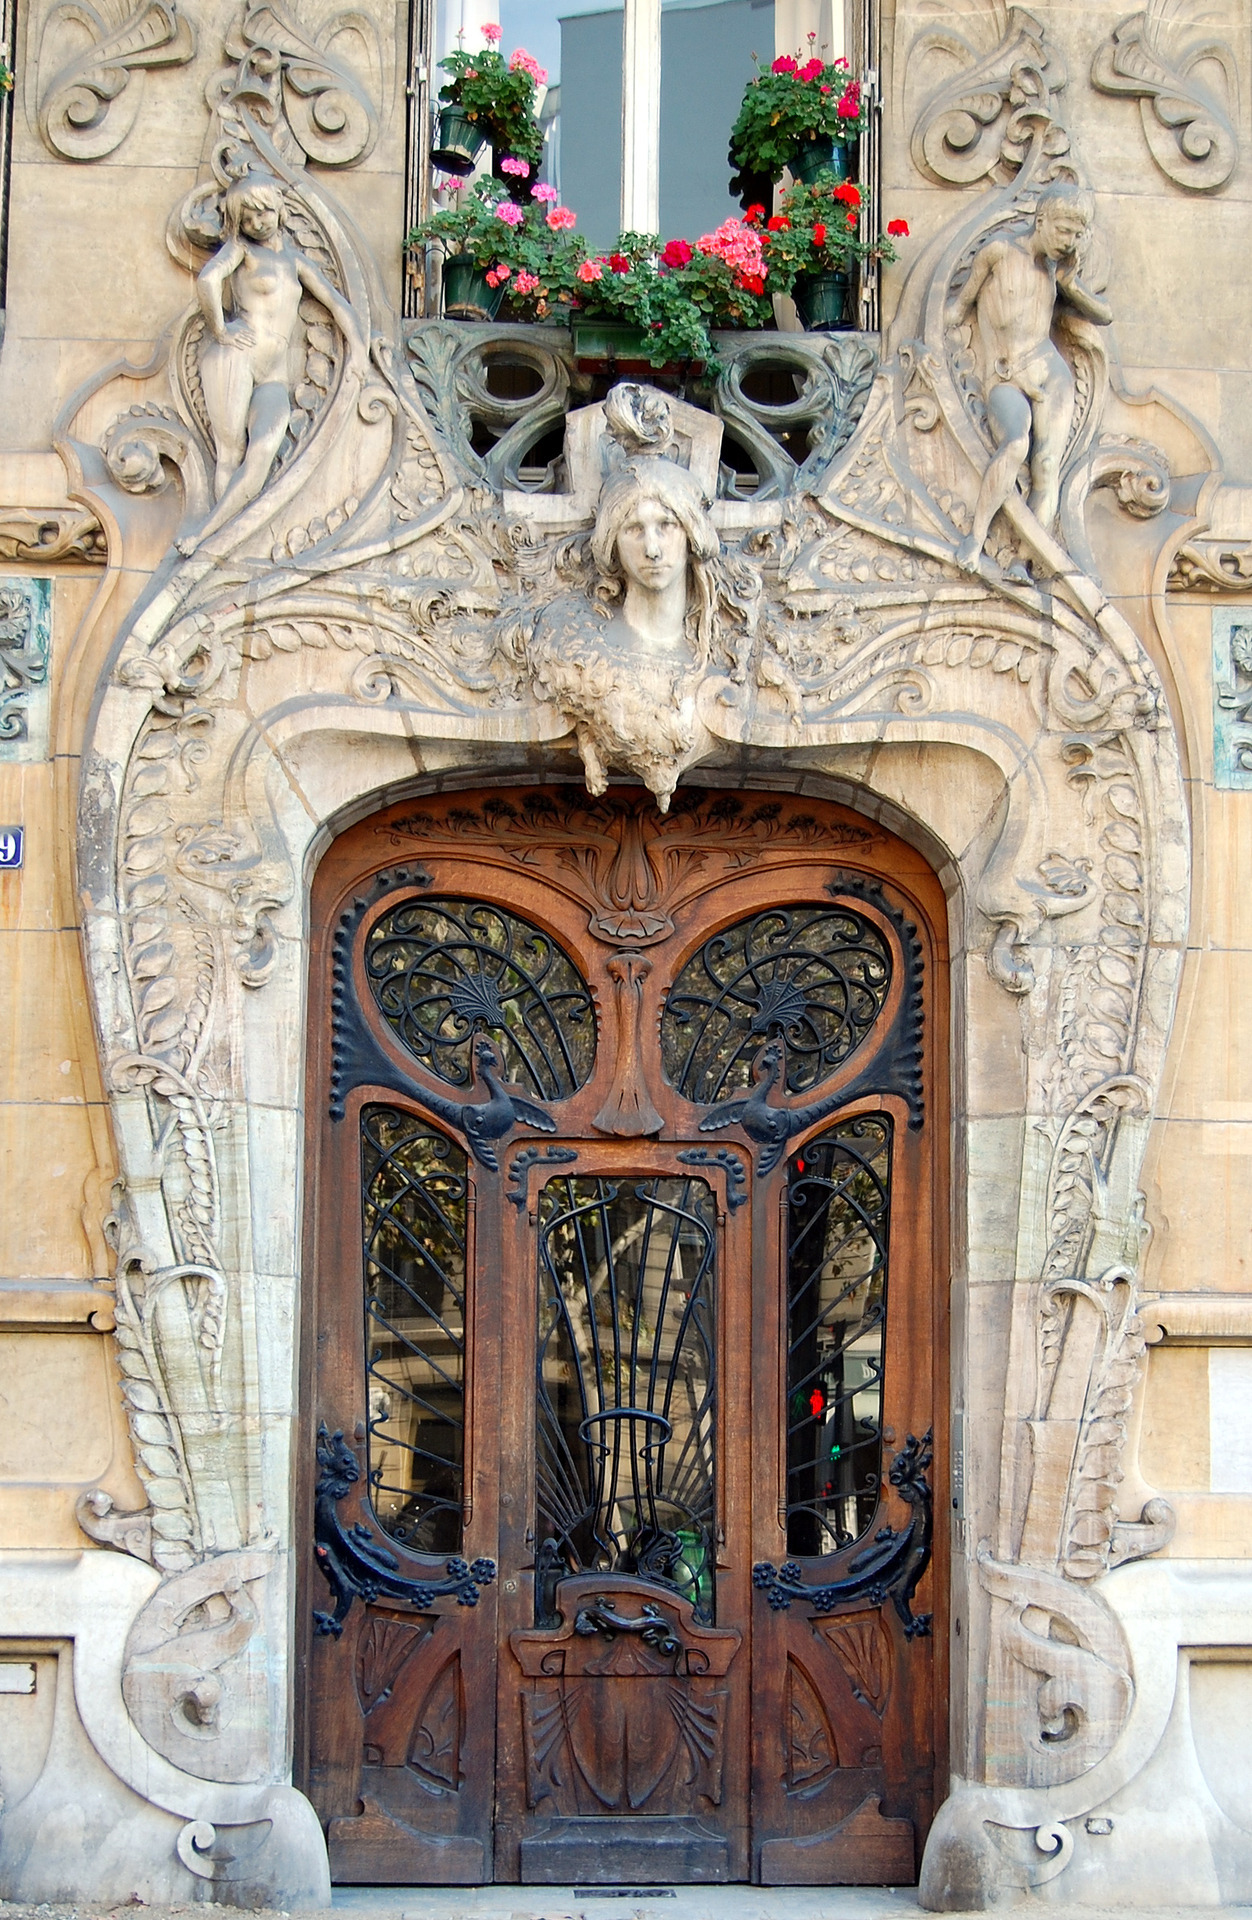 Door of the Art Nouveau Building from the architect Jules Lavirotte, 29 avenue Rapp, Paris 7th district, France. Sculptures by Jean-François Larrivé (1875-1928)